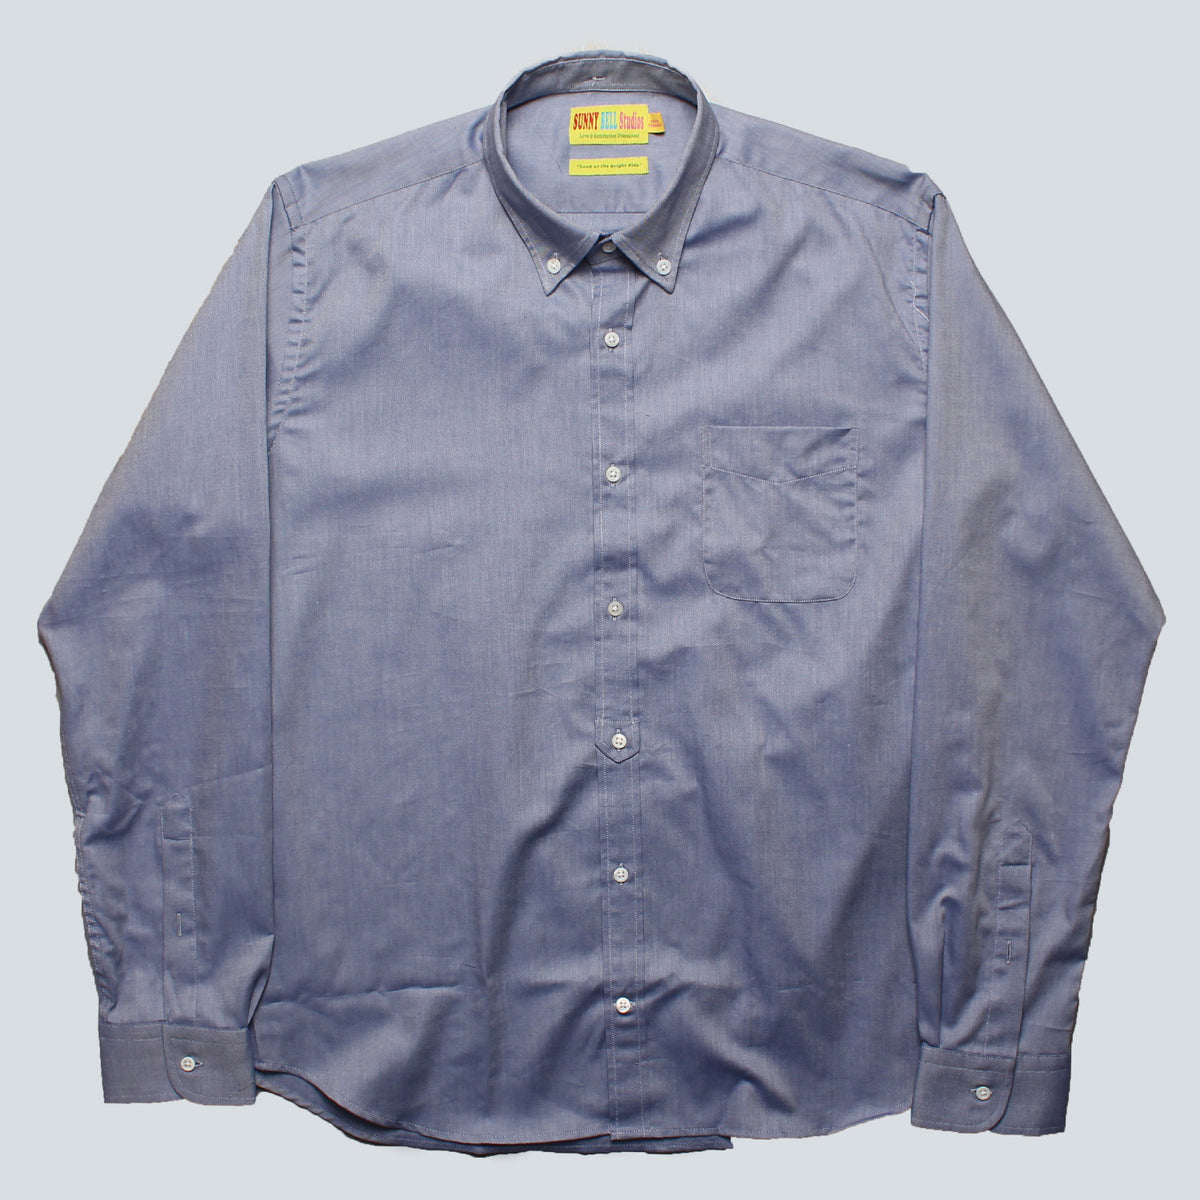 Sunny Bell Studios - Oxford Shirt - Navy